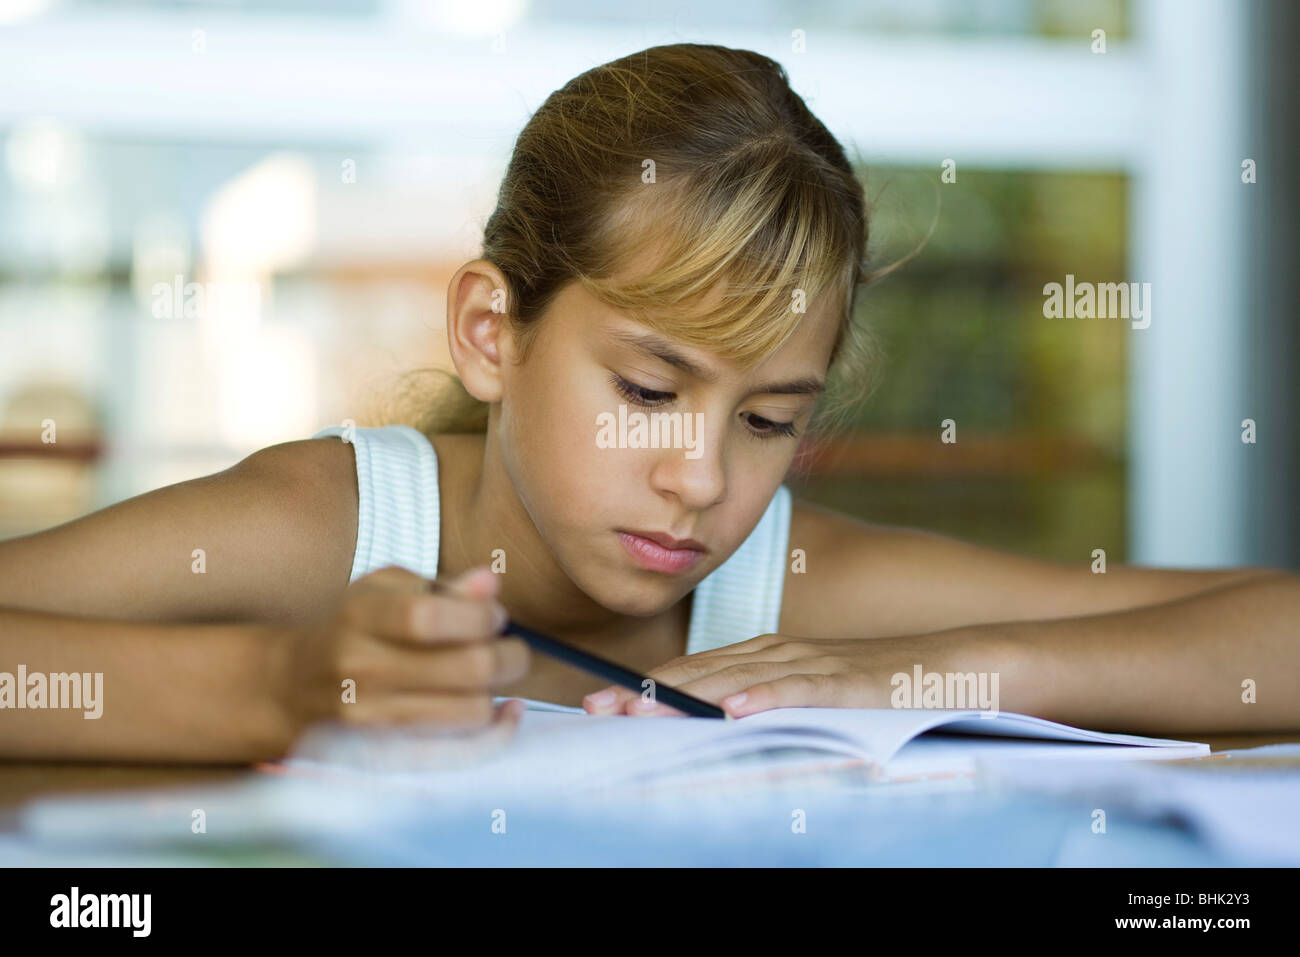 Femme junior high student studying Photo Stock